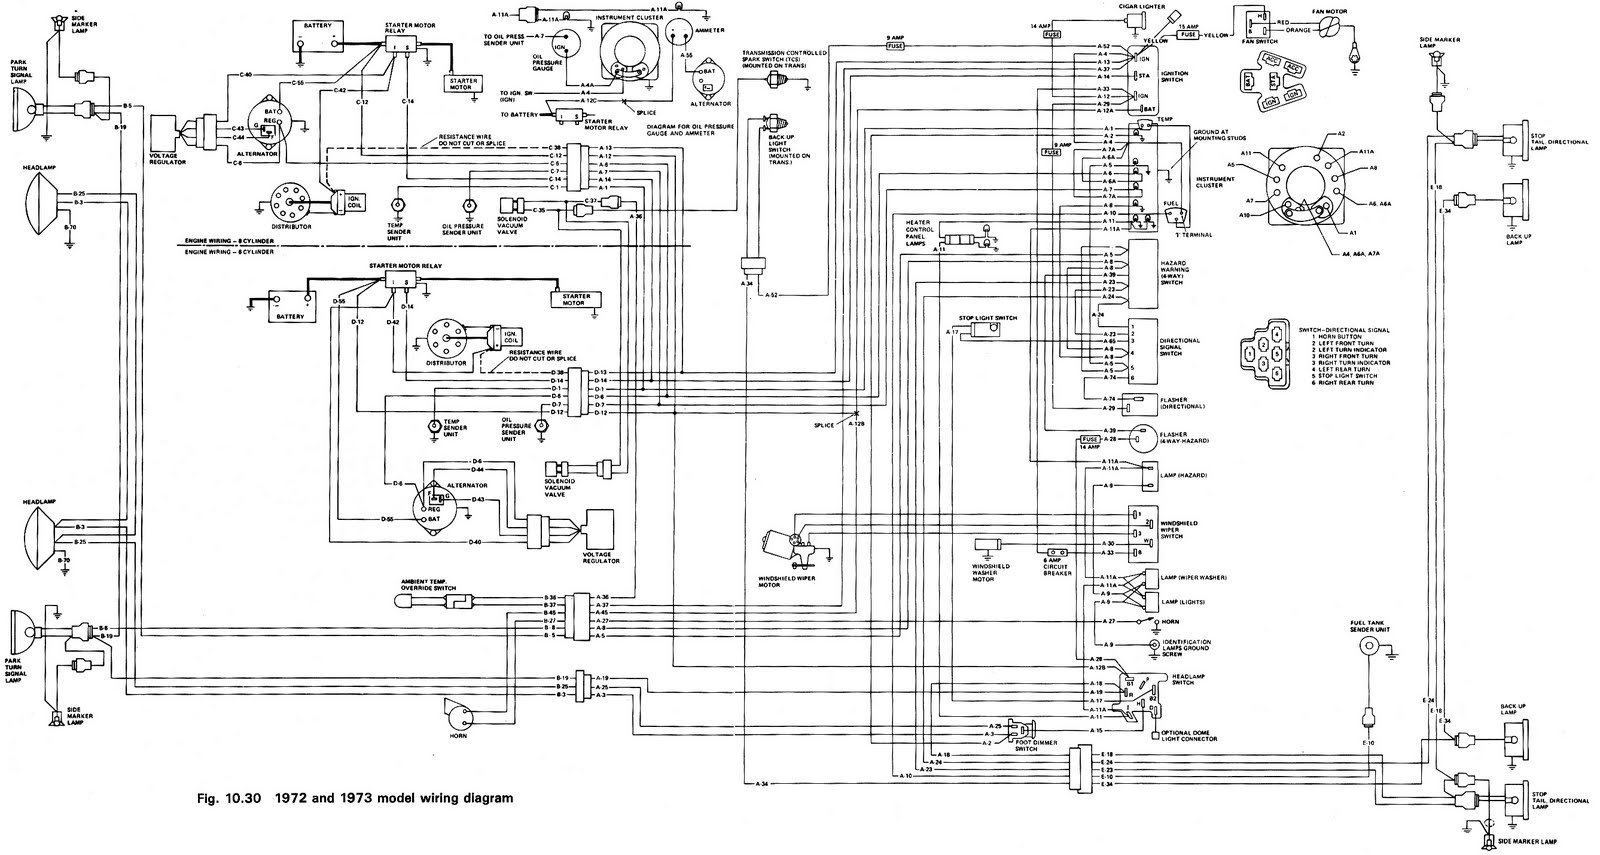 74 Jeep Cj5 Wiring Diagram, 74, Free Engine Image For User